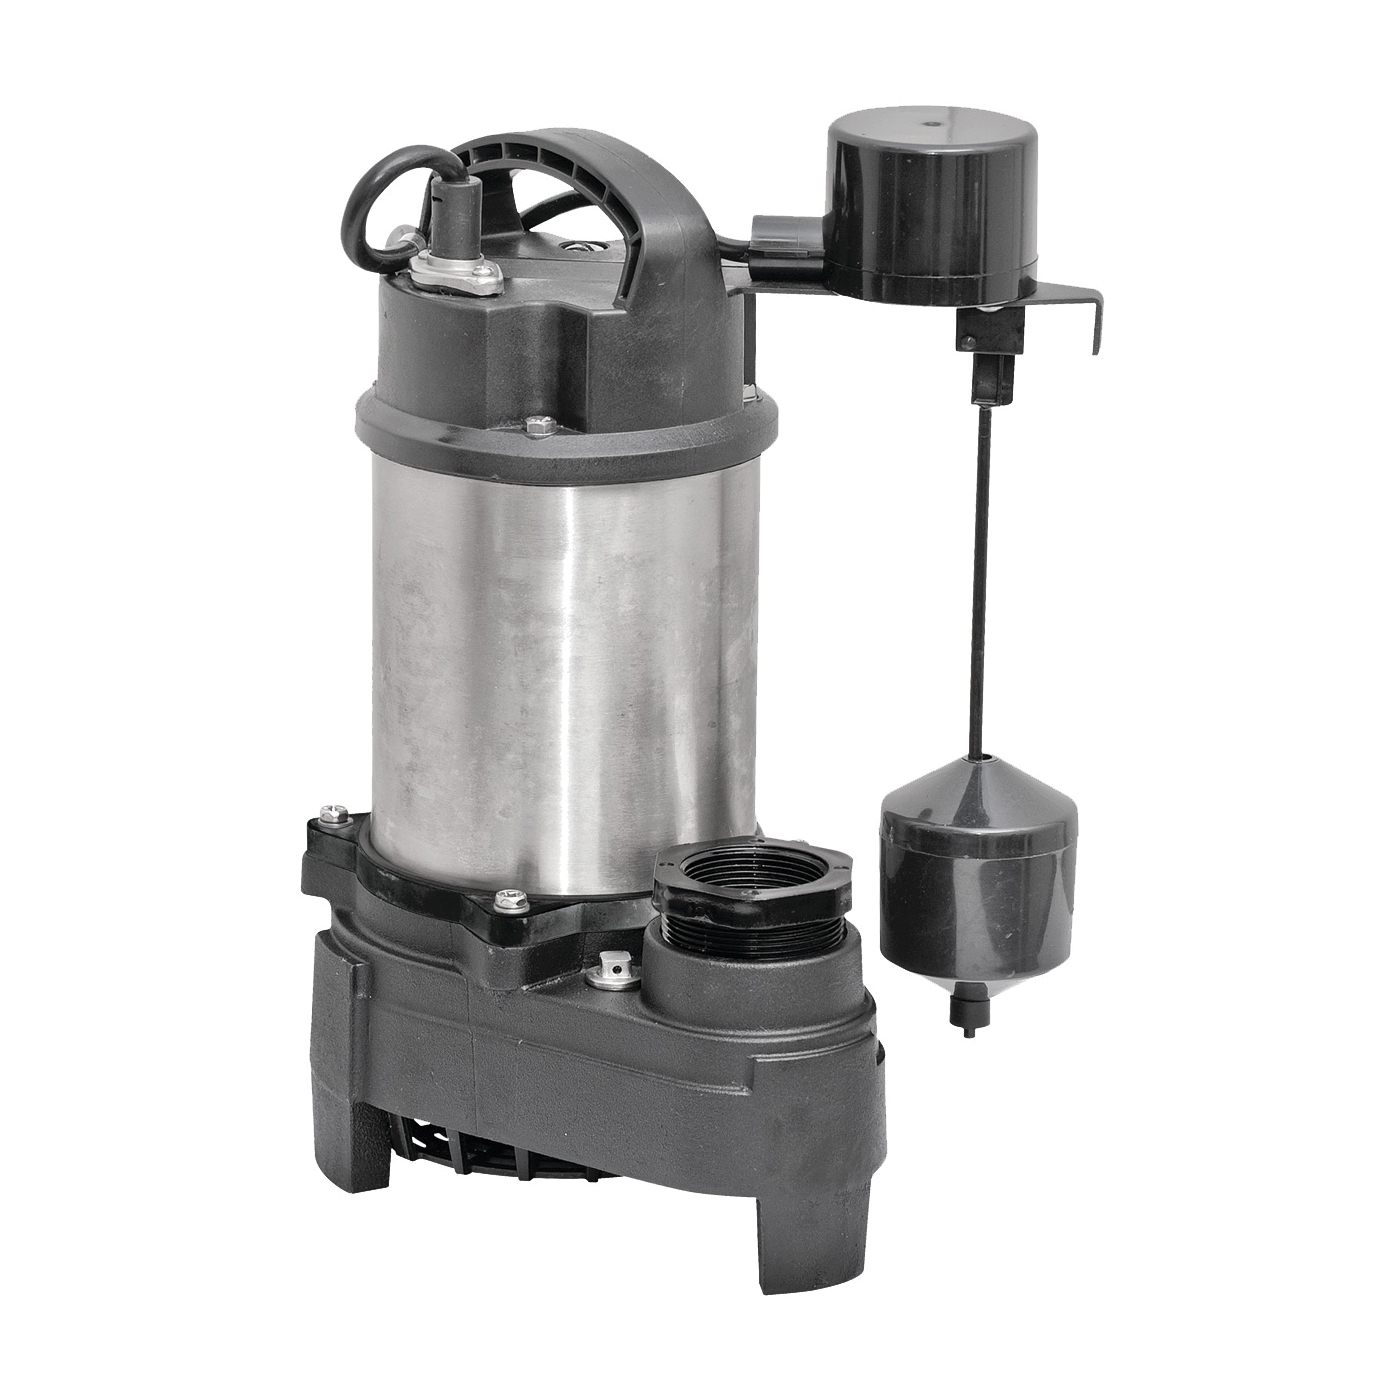 Picture of SUPERIOR PUMP 92571 Sump Pump, 7.5 A, 120 V, 0.5 hp, 2 in Outlet, 75 gpm, Iron/Stainless Steel